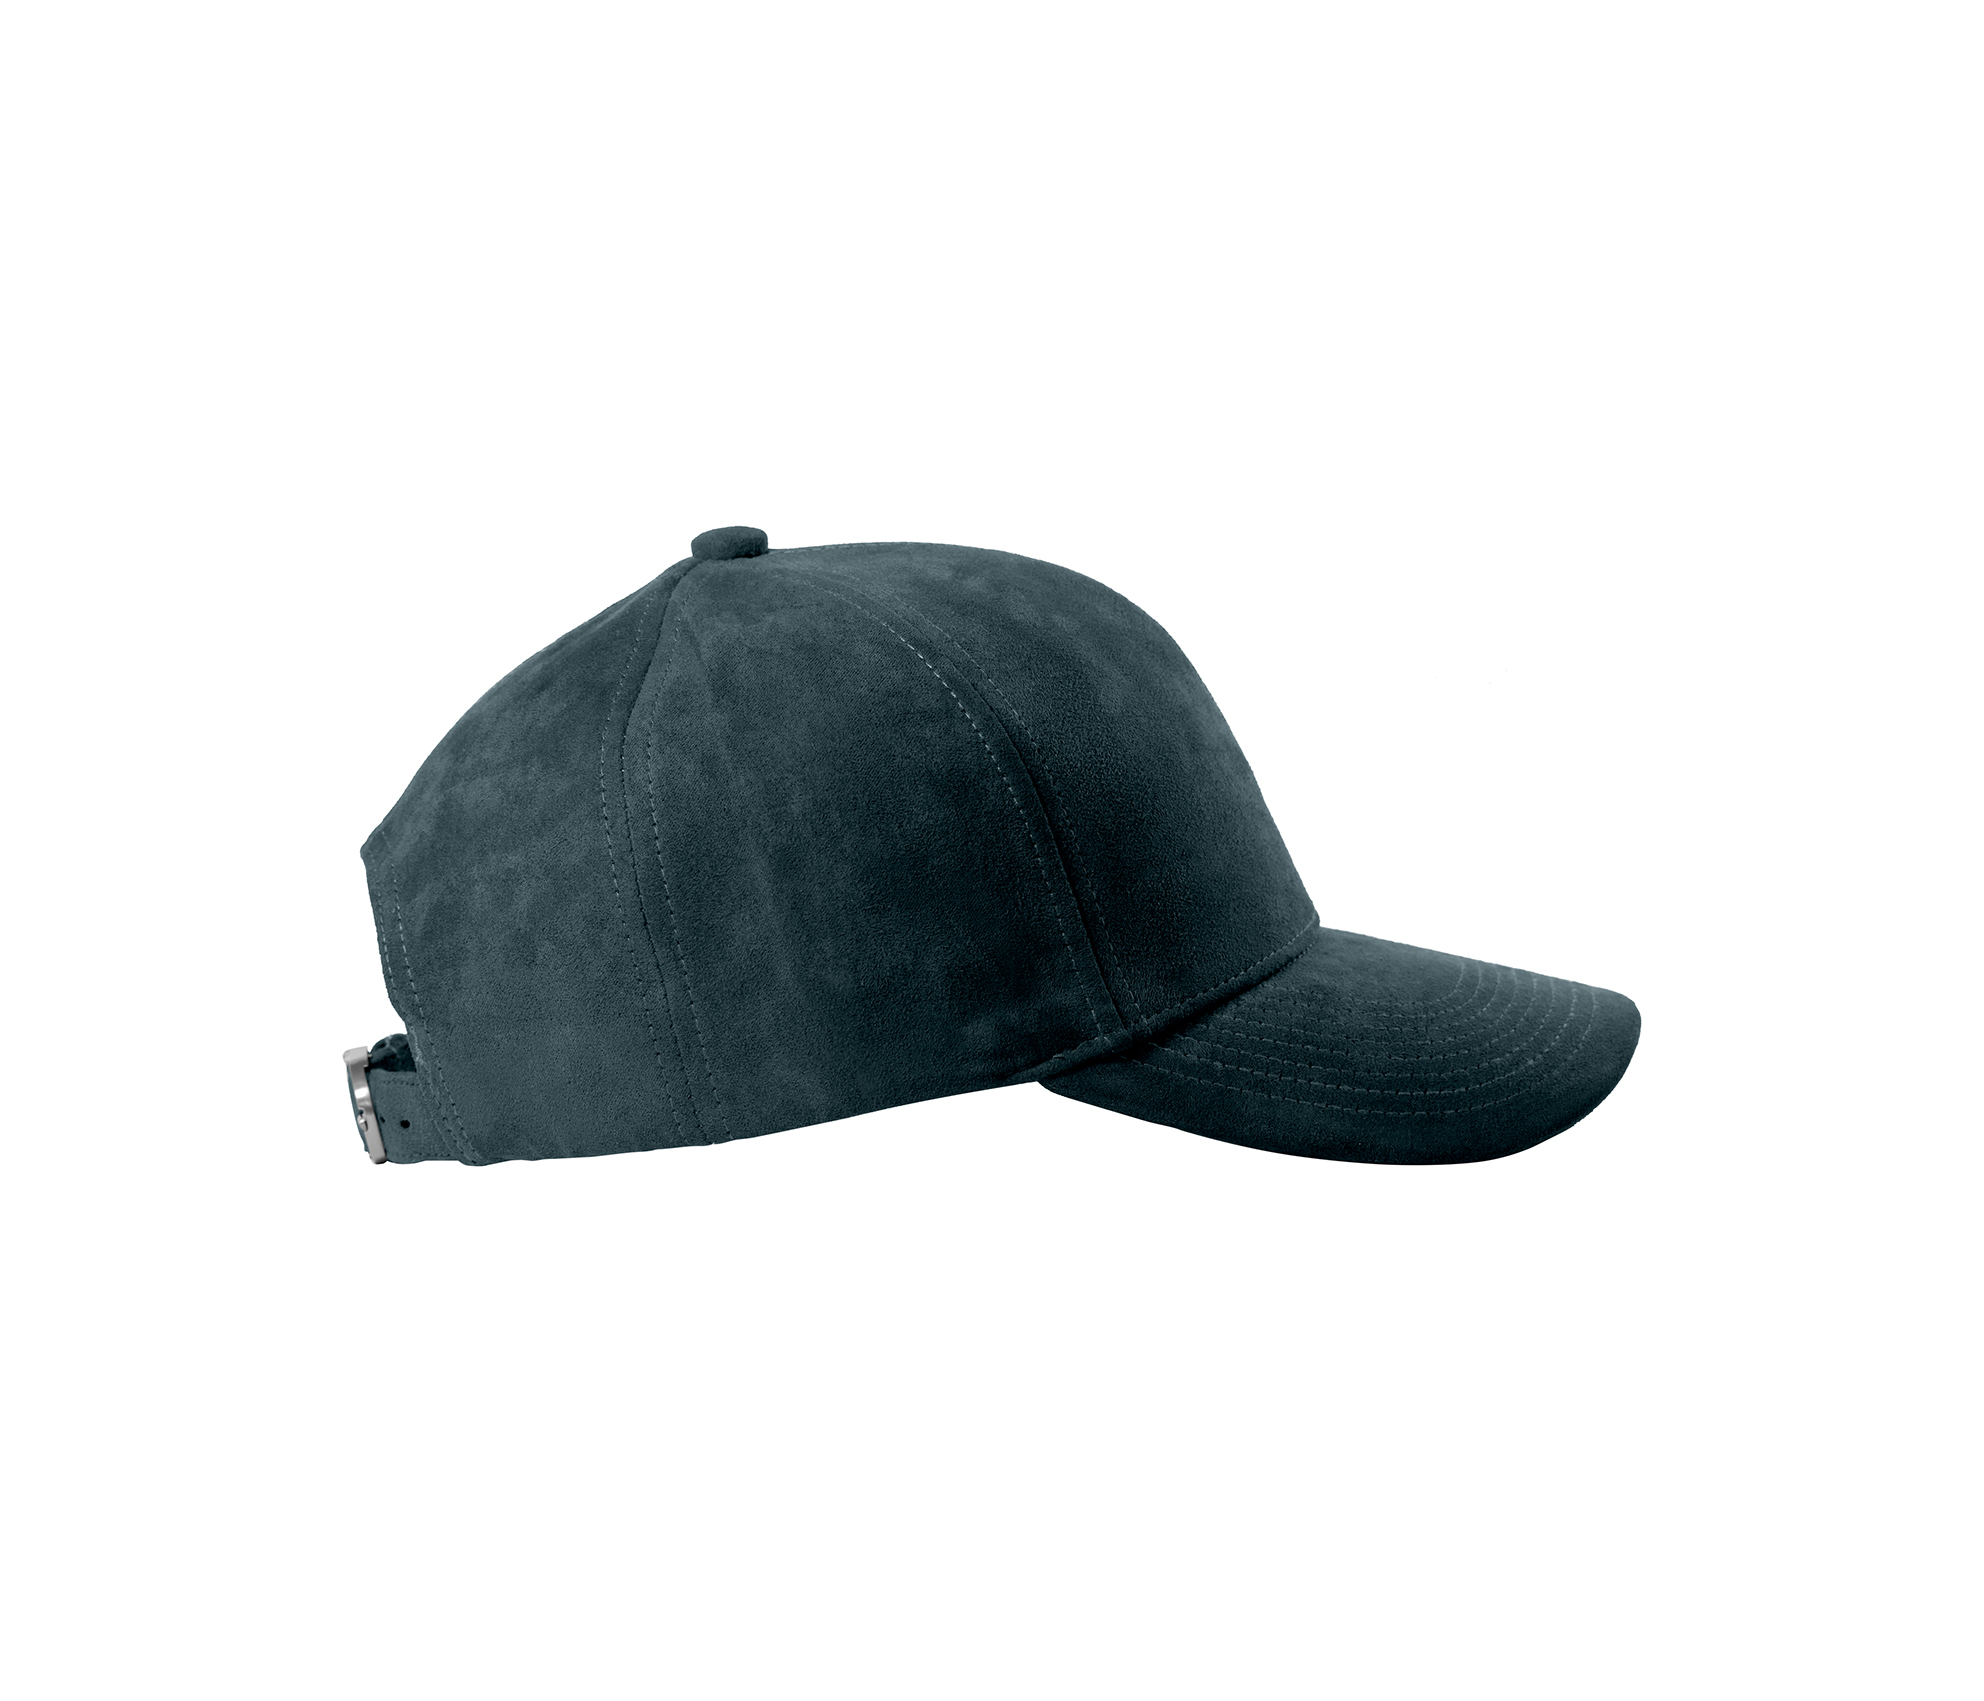 BASEBALL CAP PETROL GREEN SILVER SUEDE SIDE